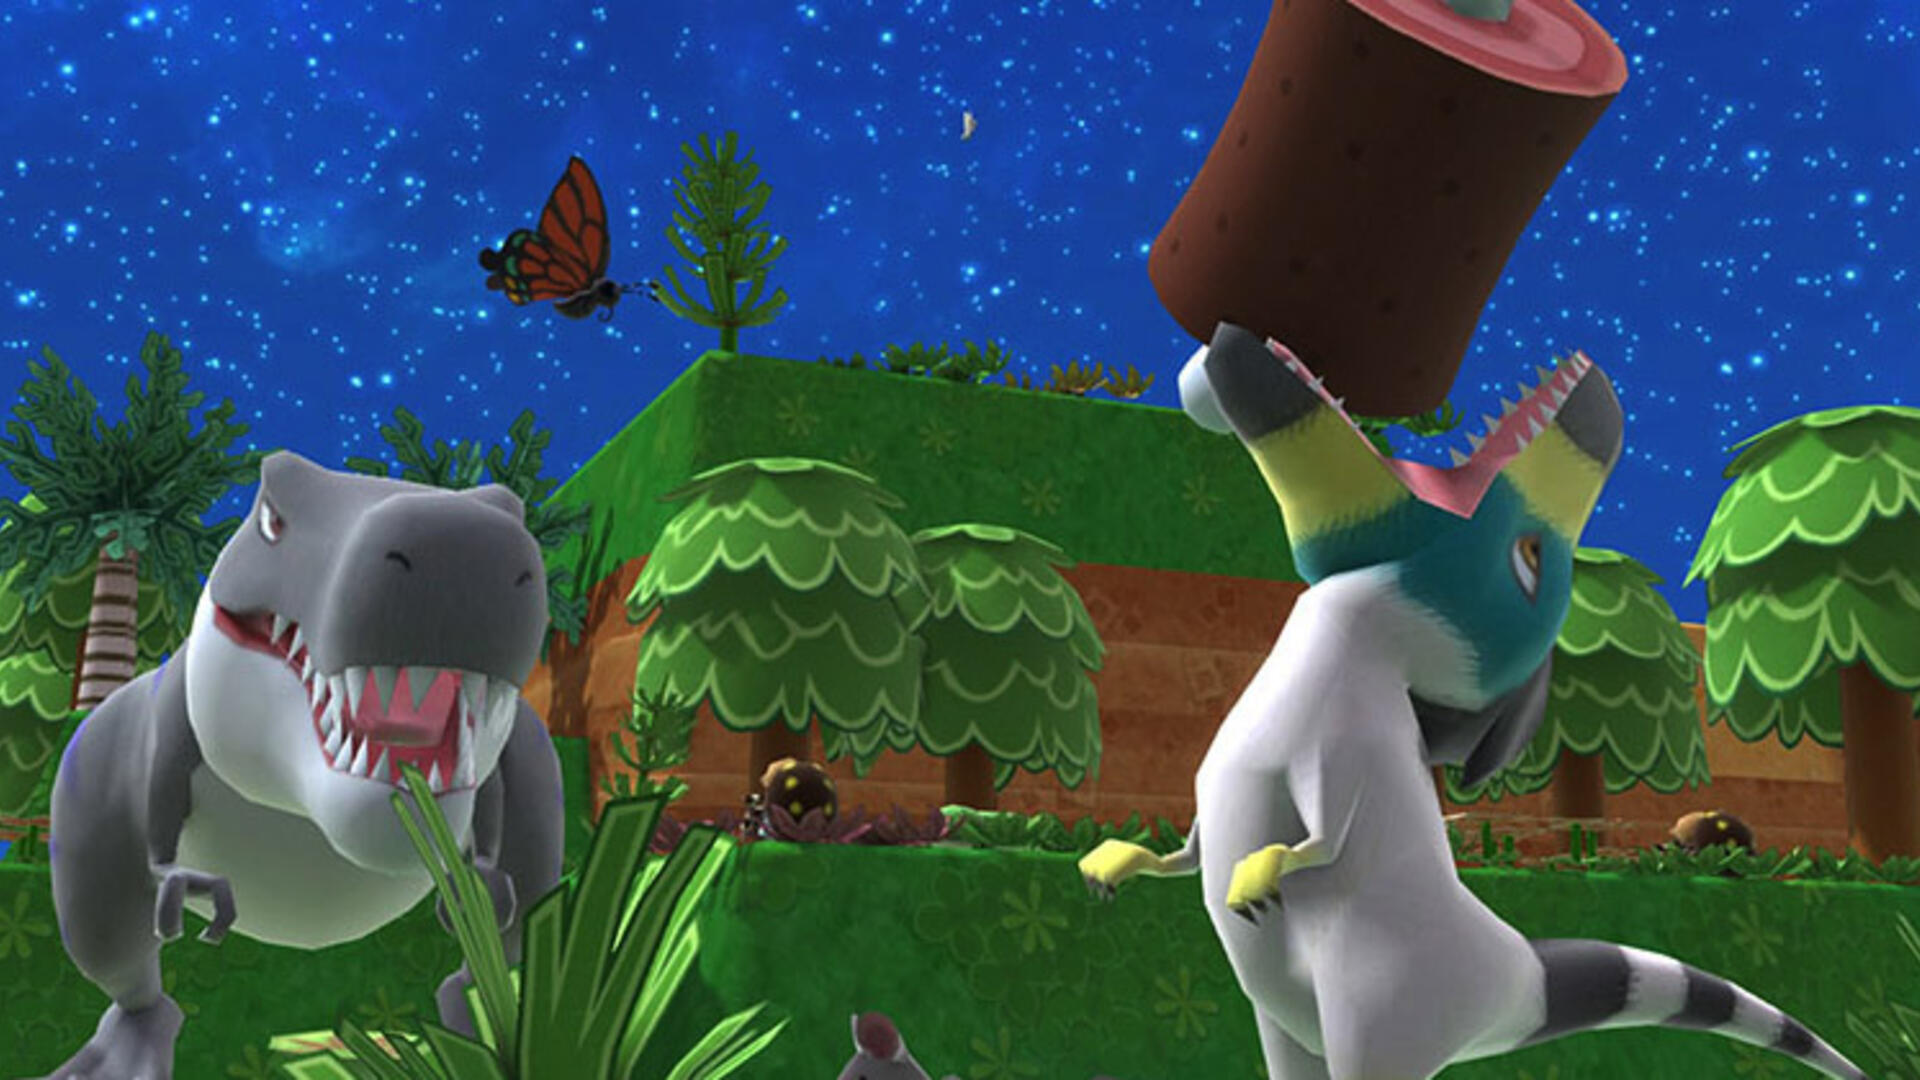 Birthdays the Beginning Brings Harvest Moon's Creator to a New Frontier